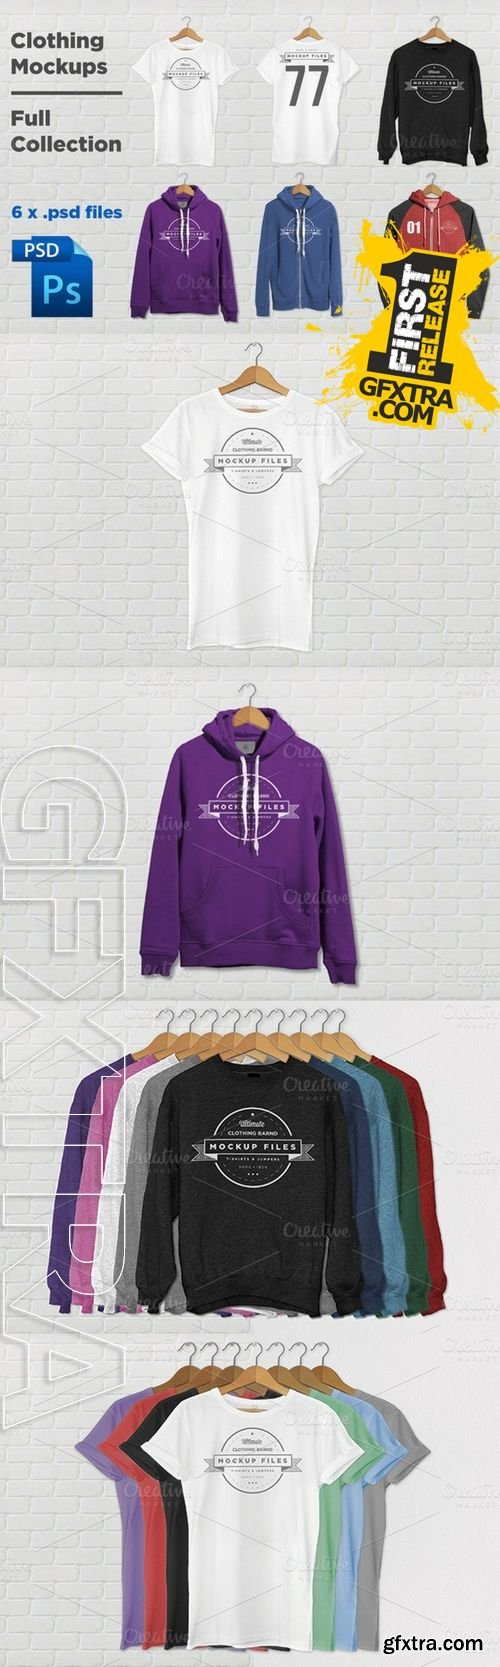 Clothing Mockups Full Collection - CM 15270